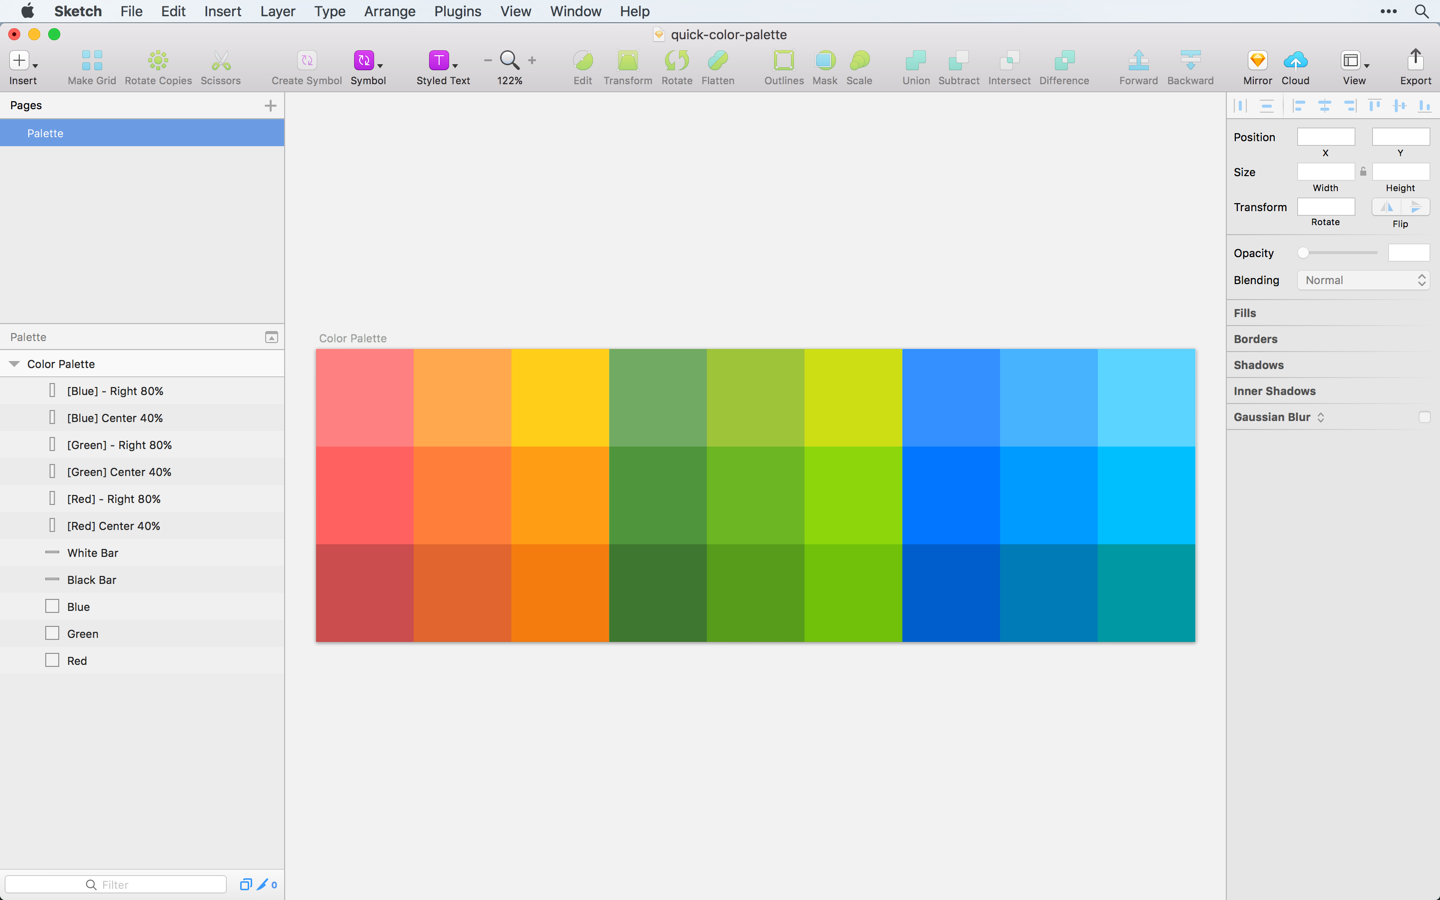 A Simple Trick For Creating Color Palettes Quickly – Sketch Tricks ...